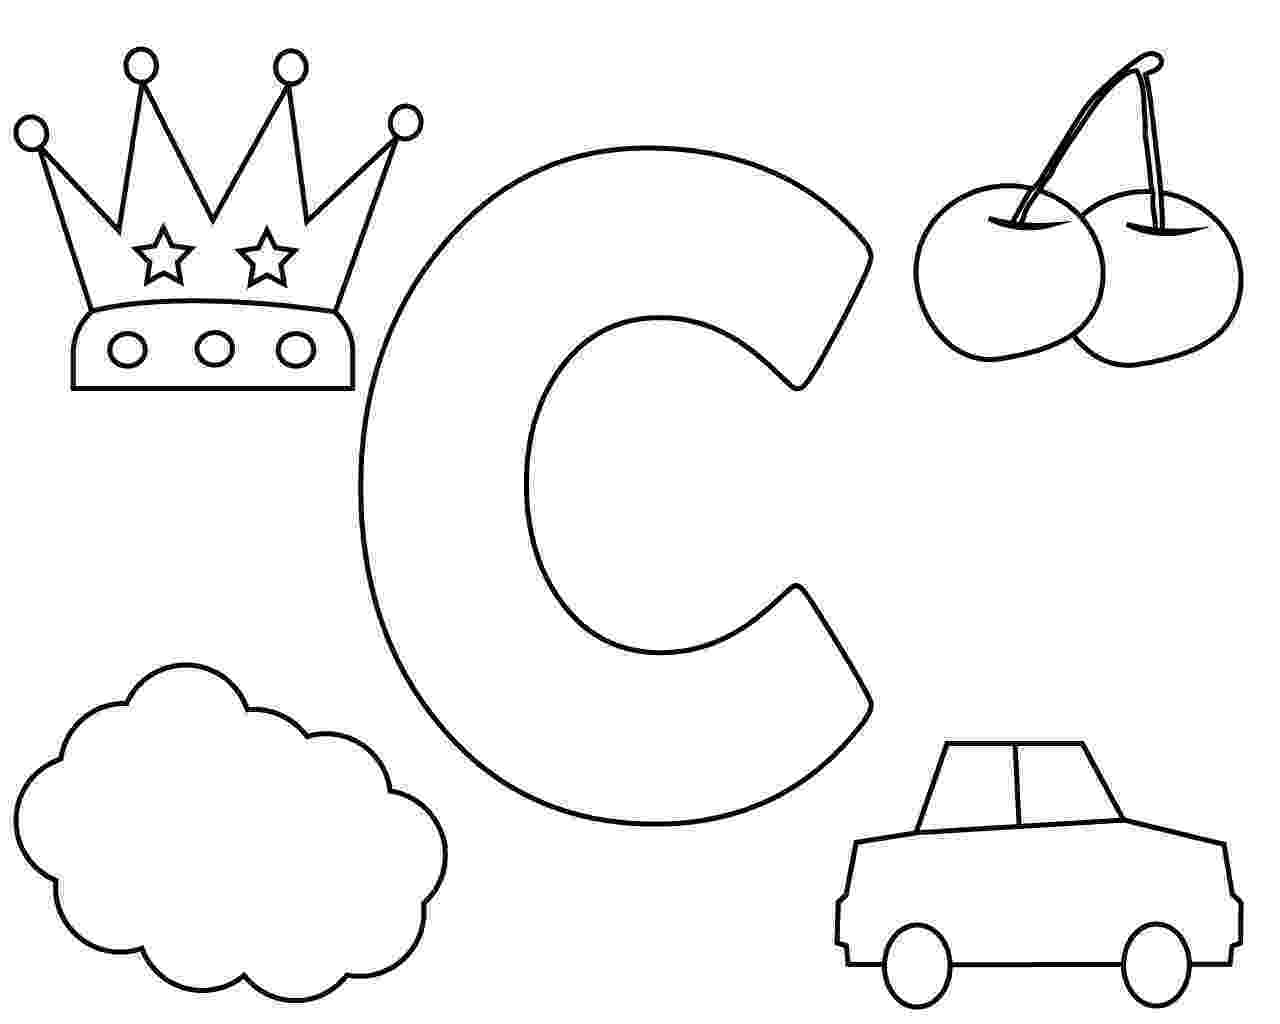 c coloring page letter c coloring pages getcoloringpagescom page coloring c